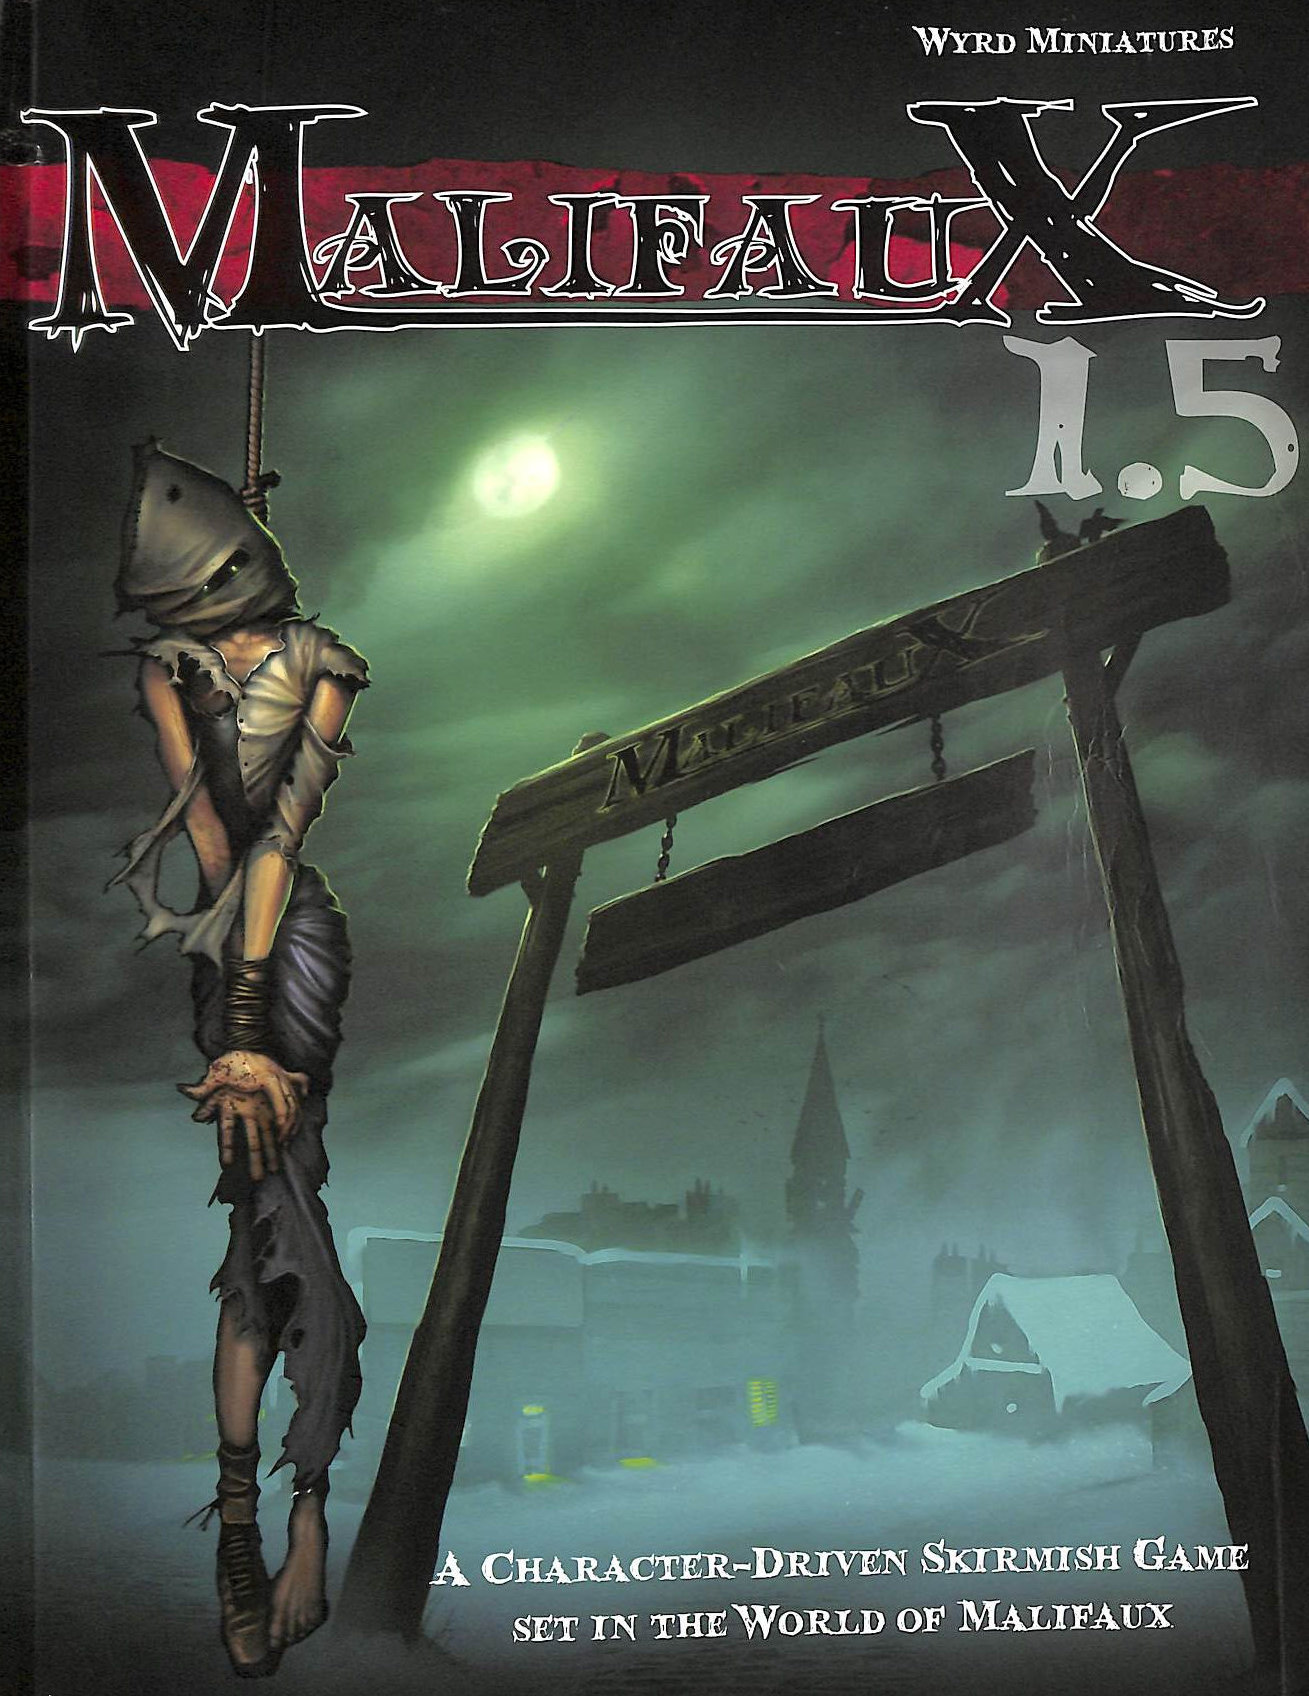 Image for Malifaux 1.5 a Character-Driven Skirmish Game Set in the World of Malifaux